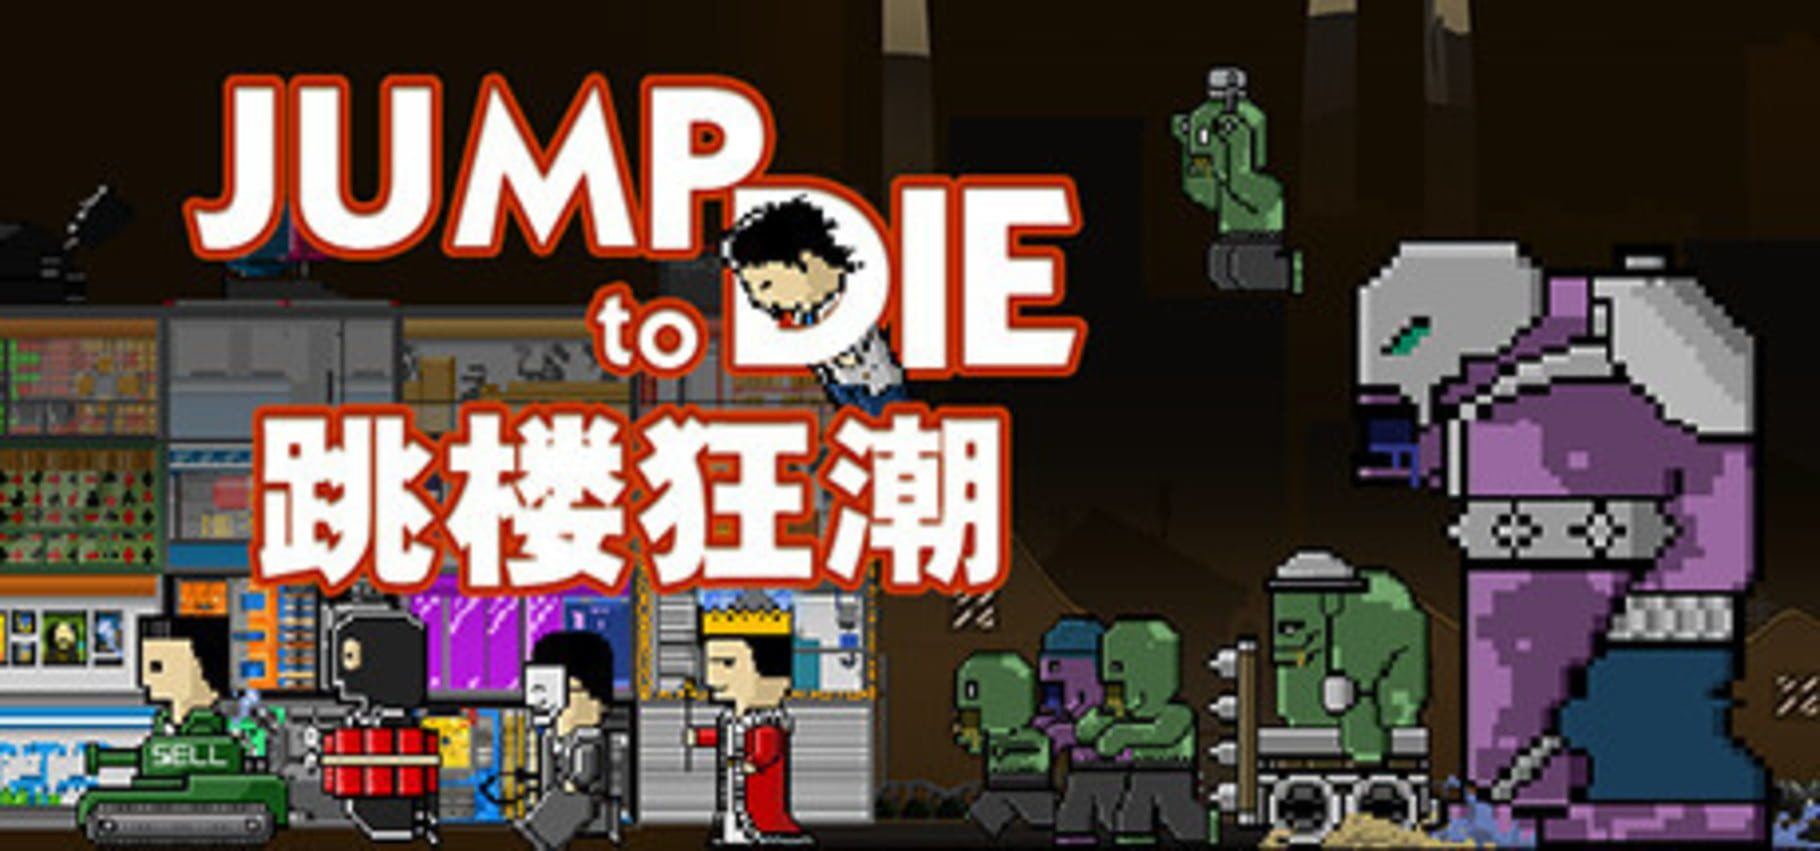 buy Jump To Die!! cd key for psn platform